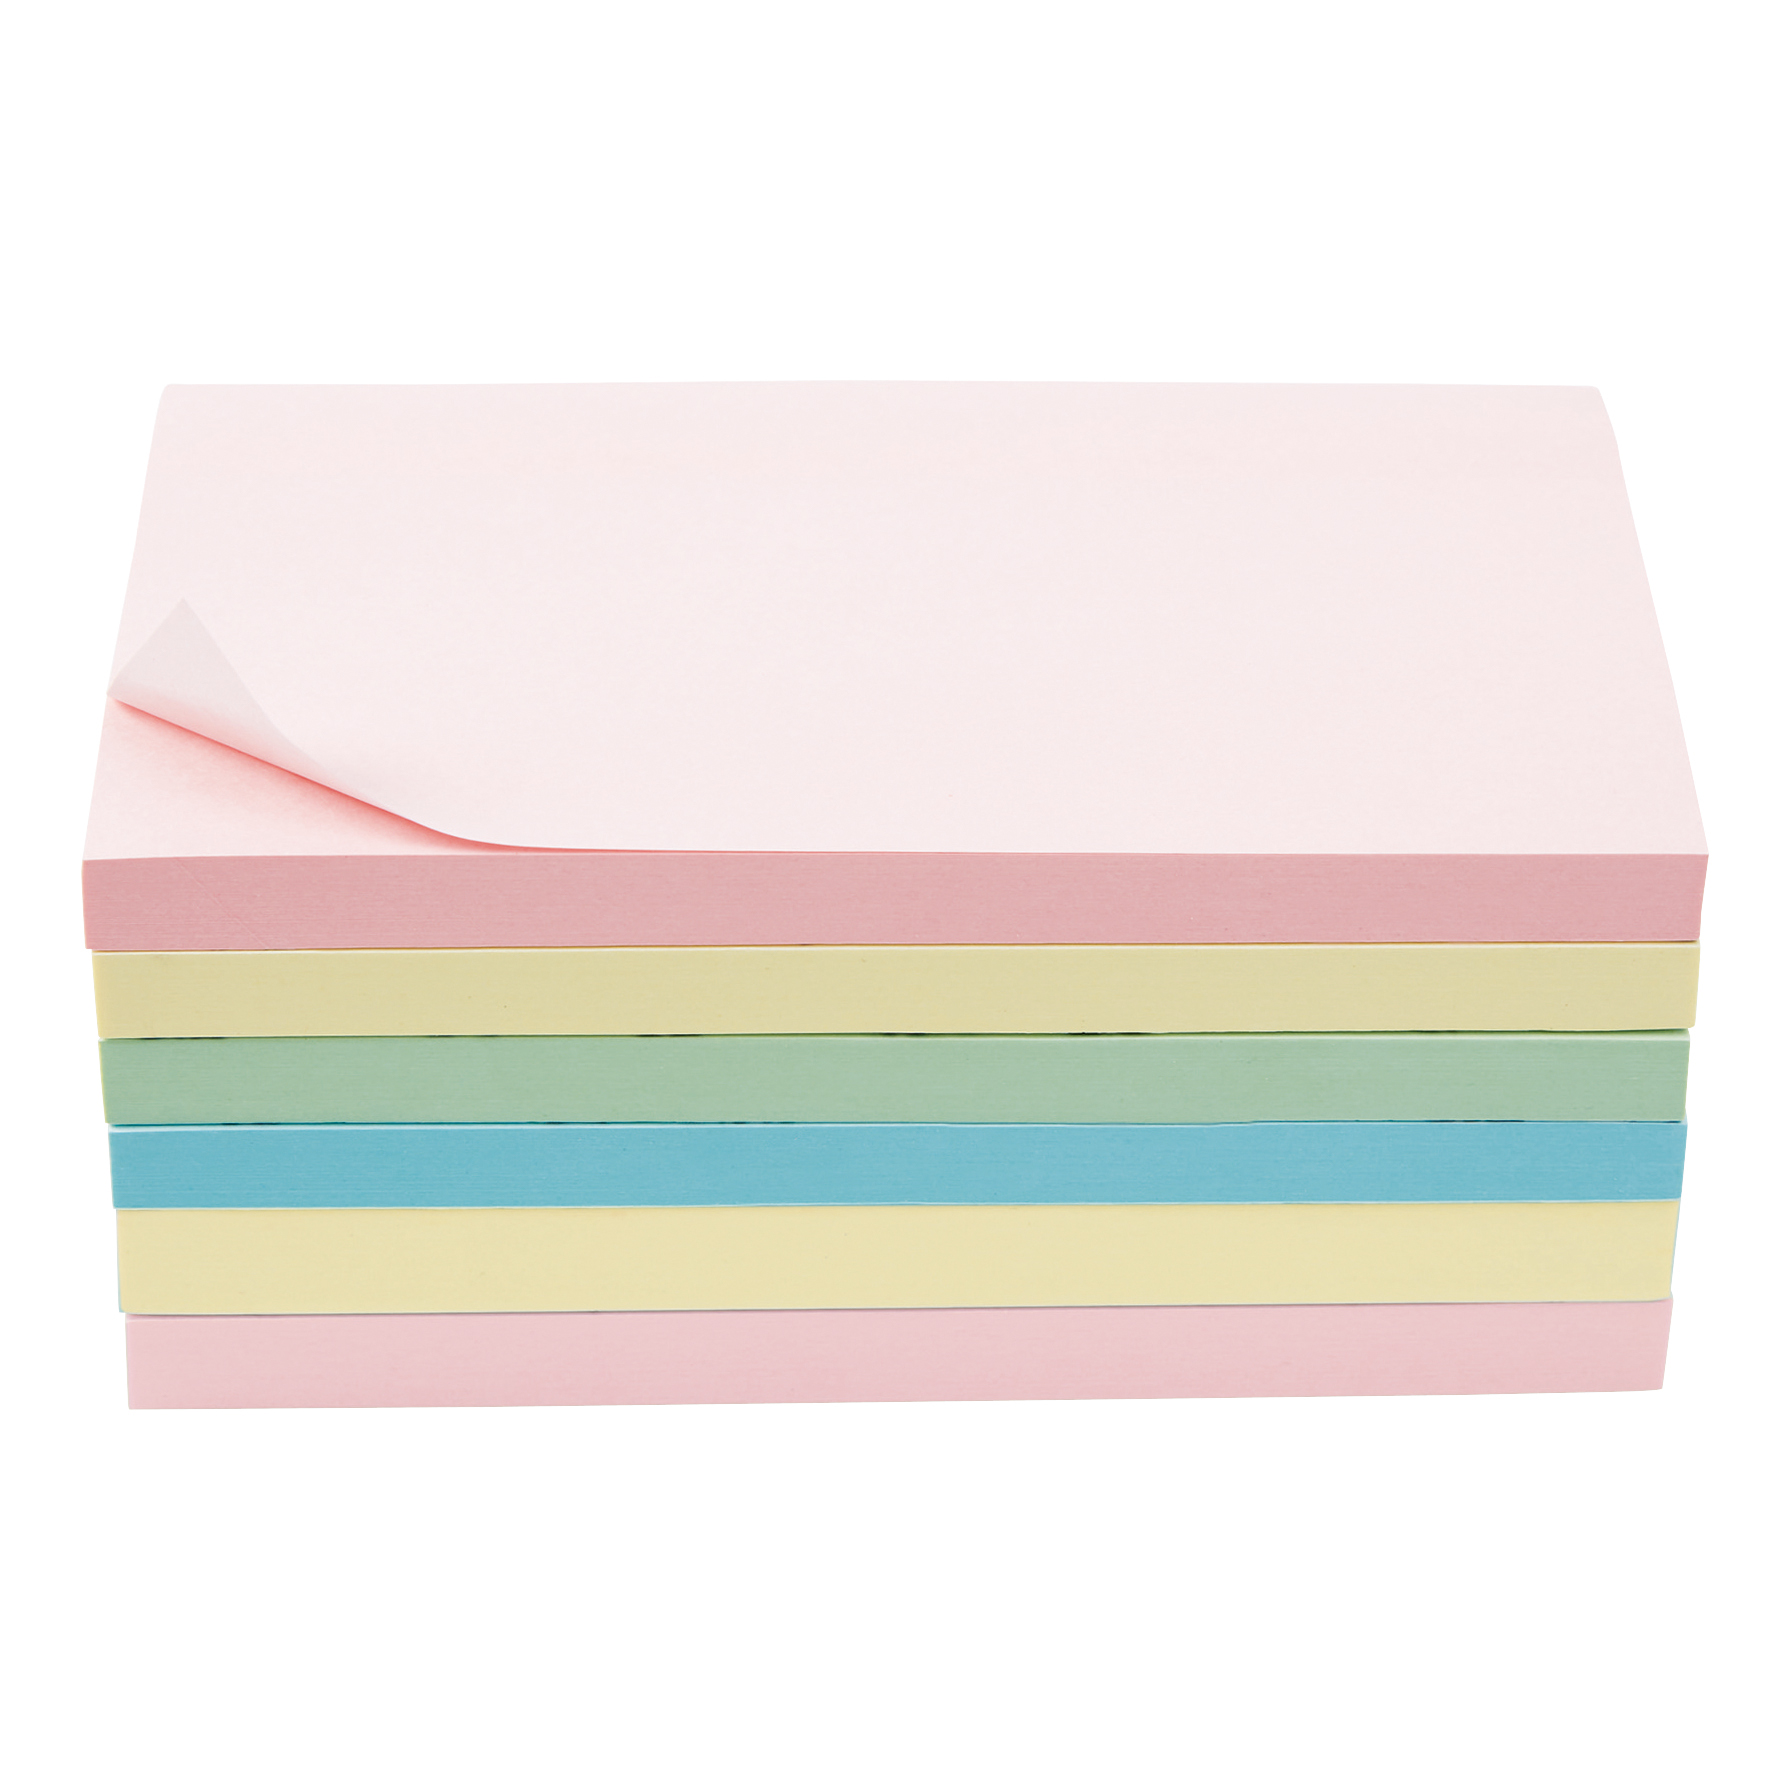 5 Star Office Extra Sticky Re-Move Notes Pad of 90 Sheets 76x127mm 4 Assorted Pastel Colours [Pack 6]